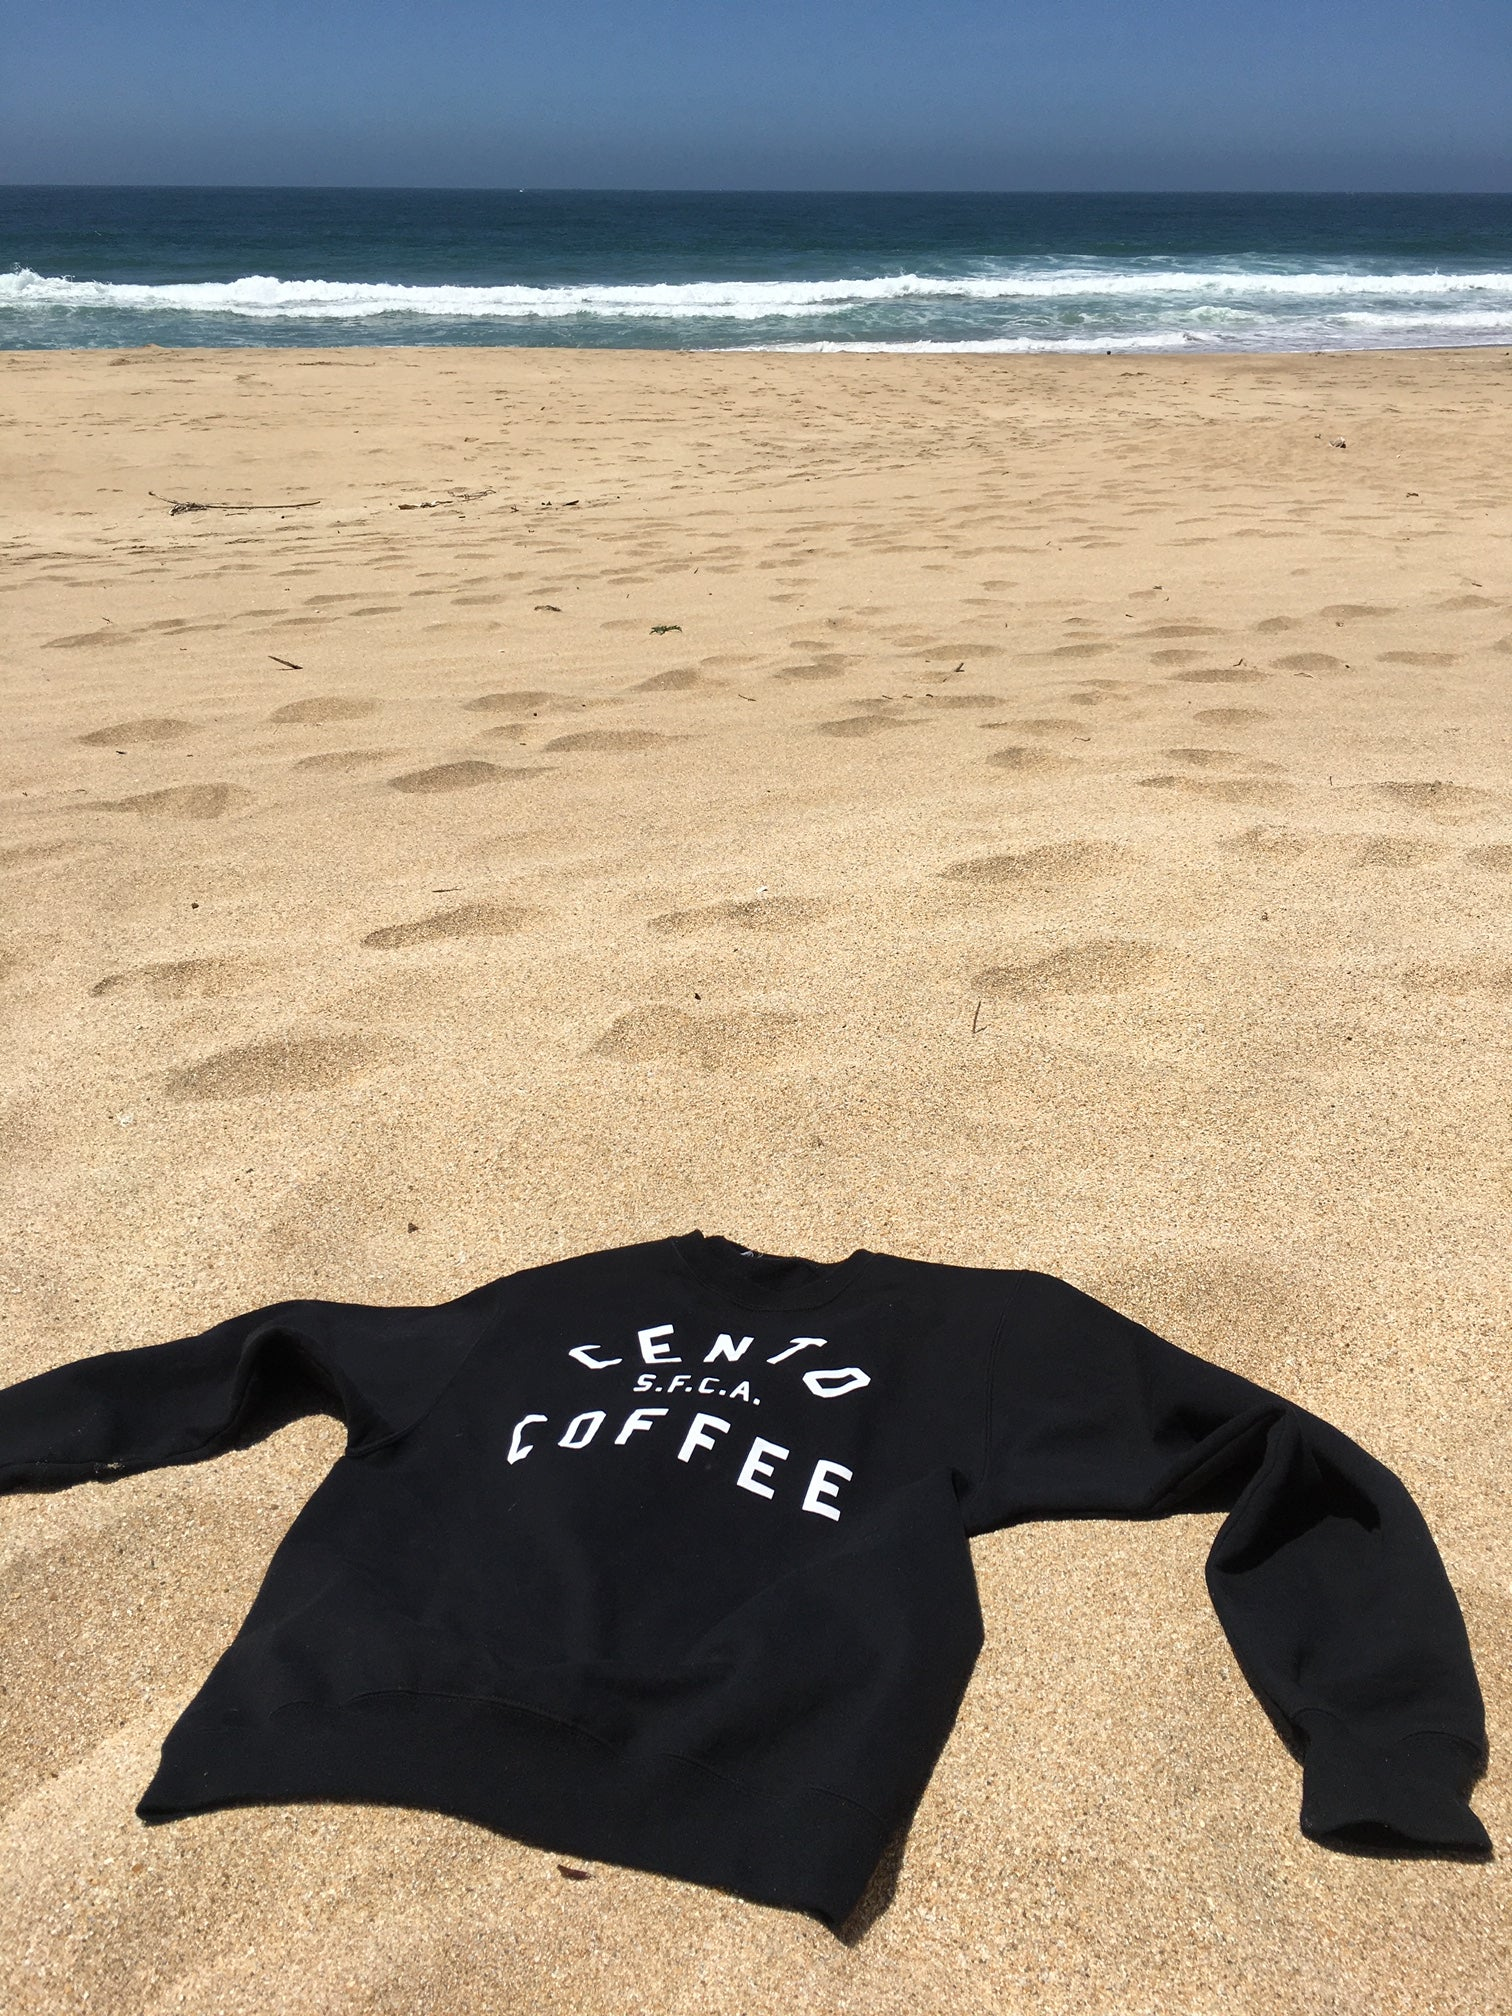 Cento Coffee Sweatshirt